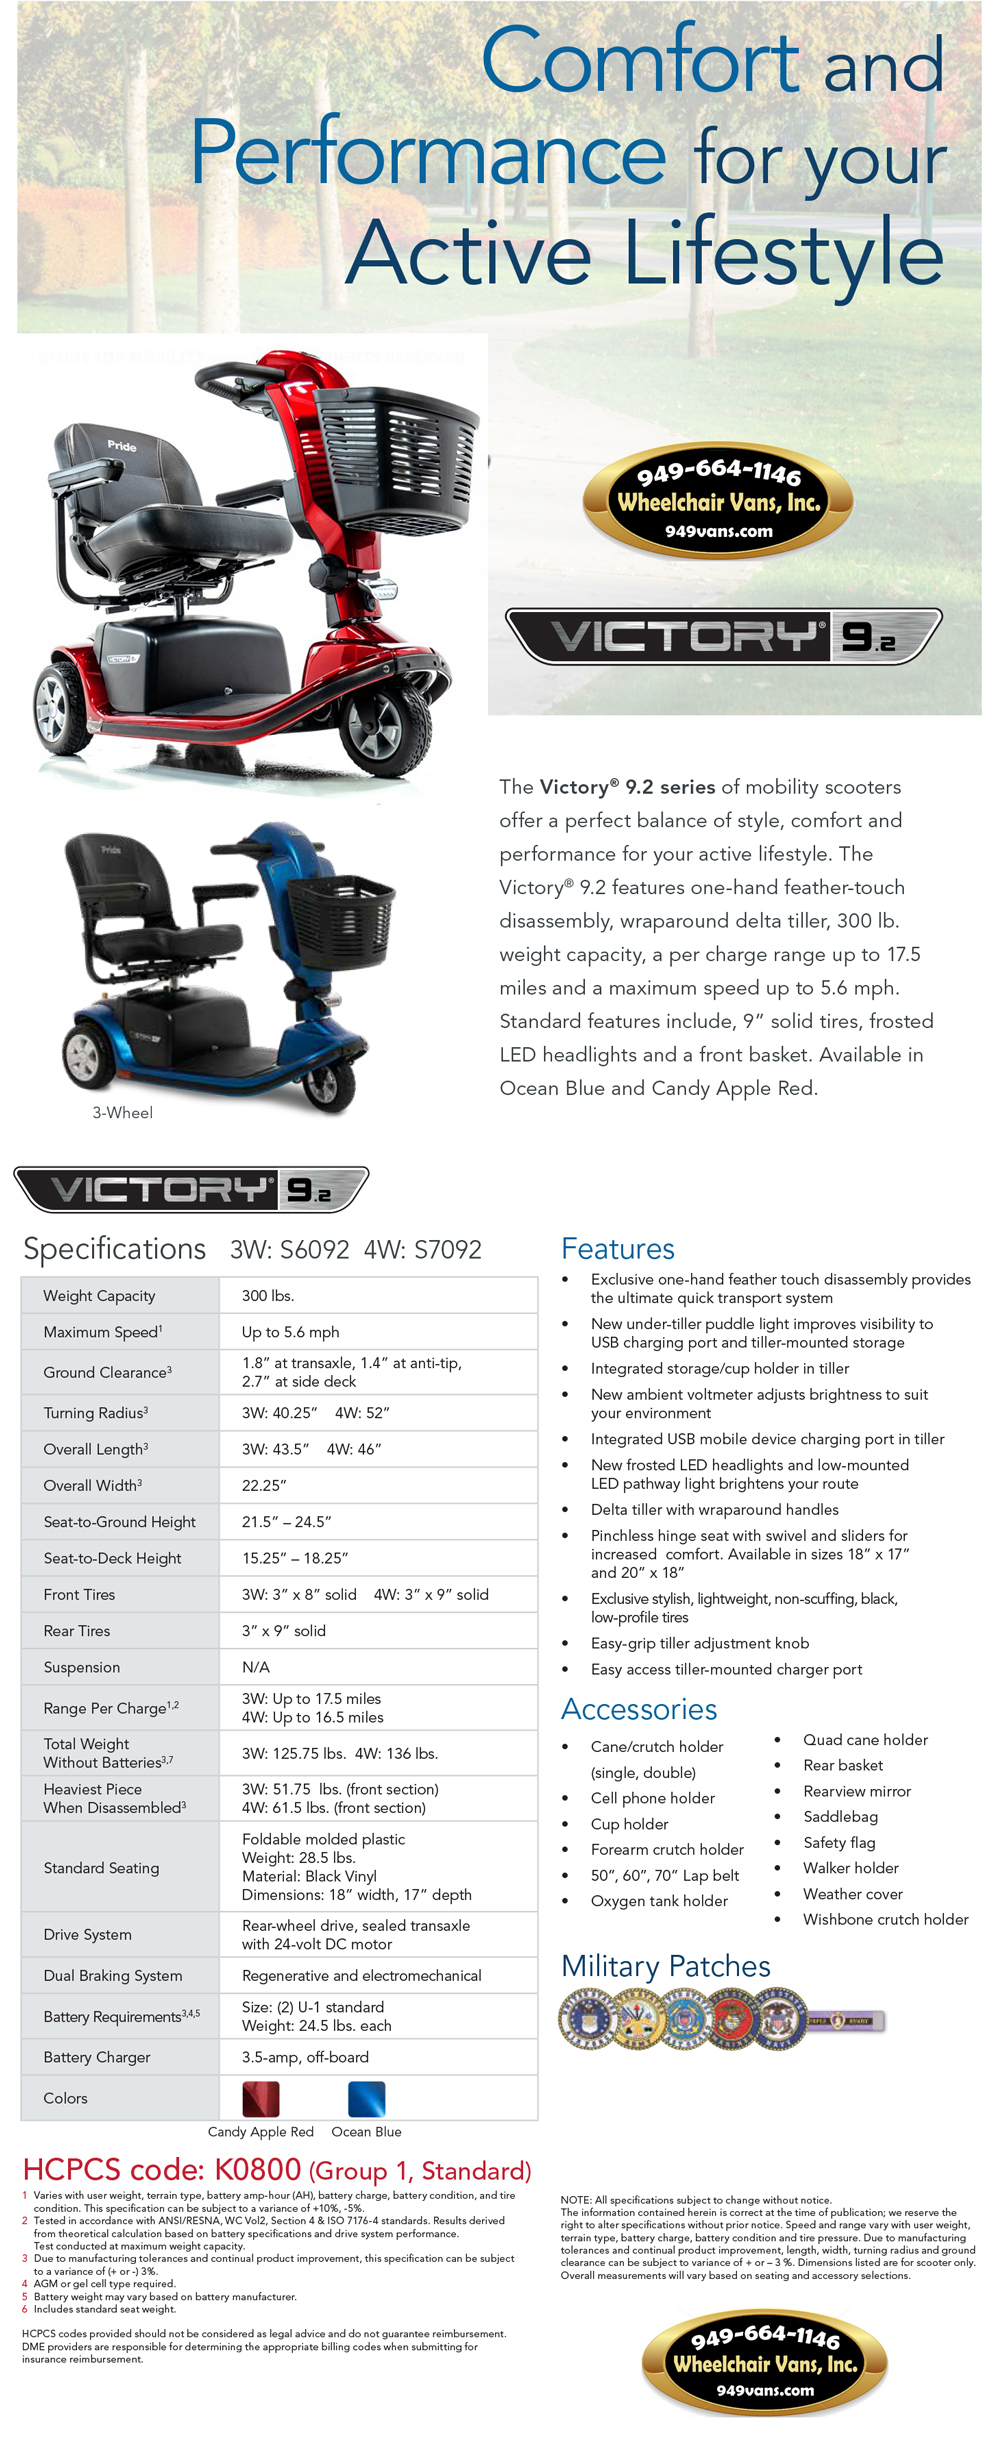 Best Prices on Pride Mobility Victory 9.2 3 Wheel Mobility Scooter Mobility Sales Event